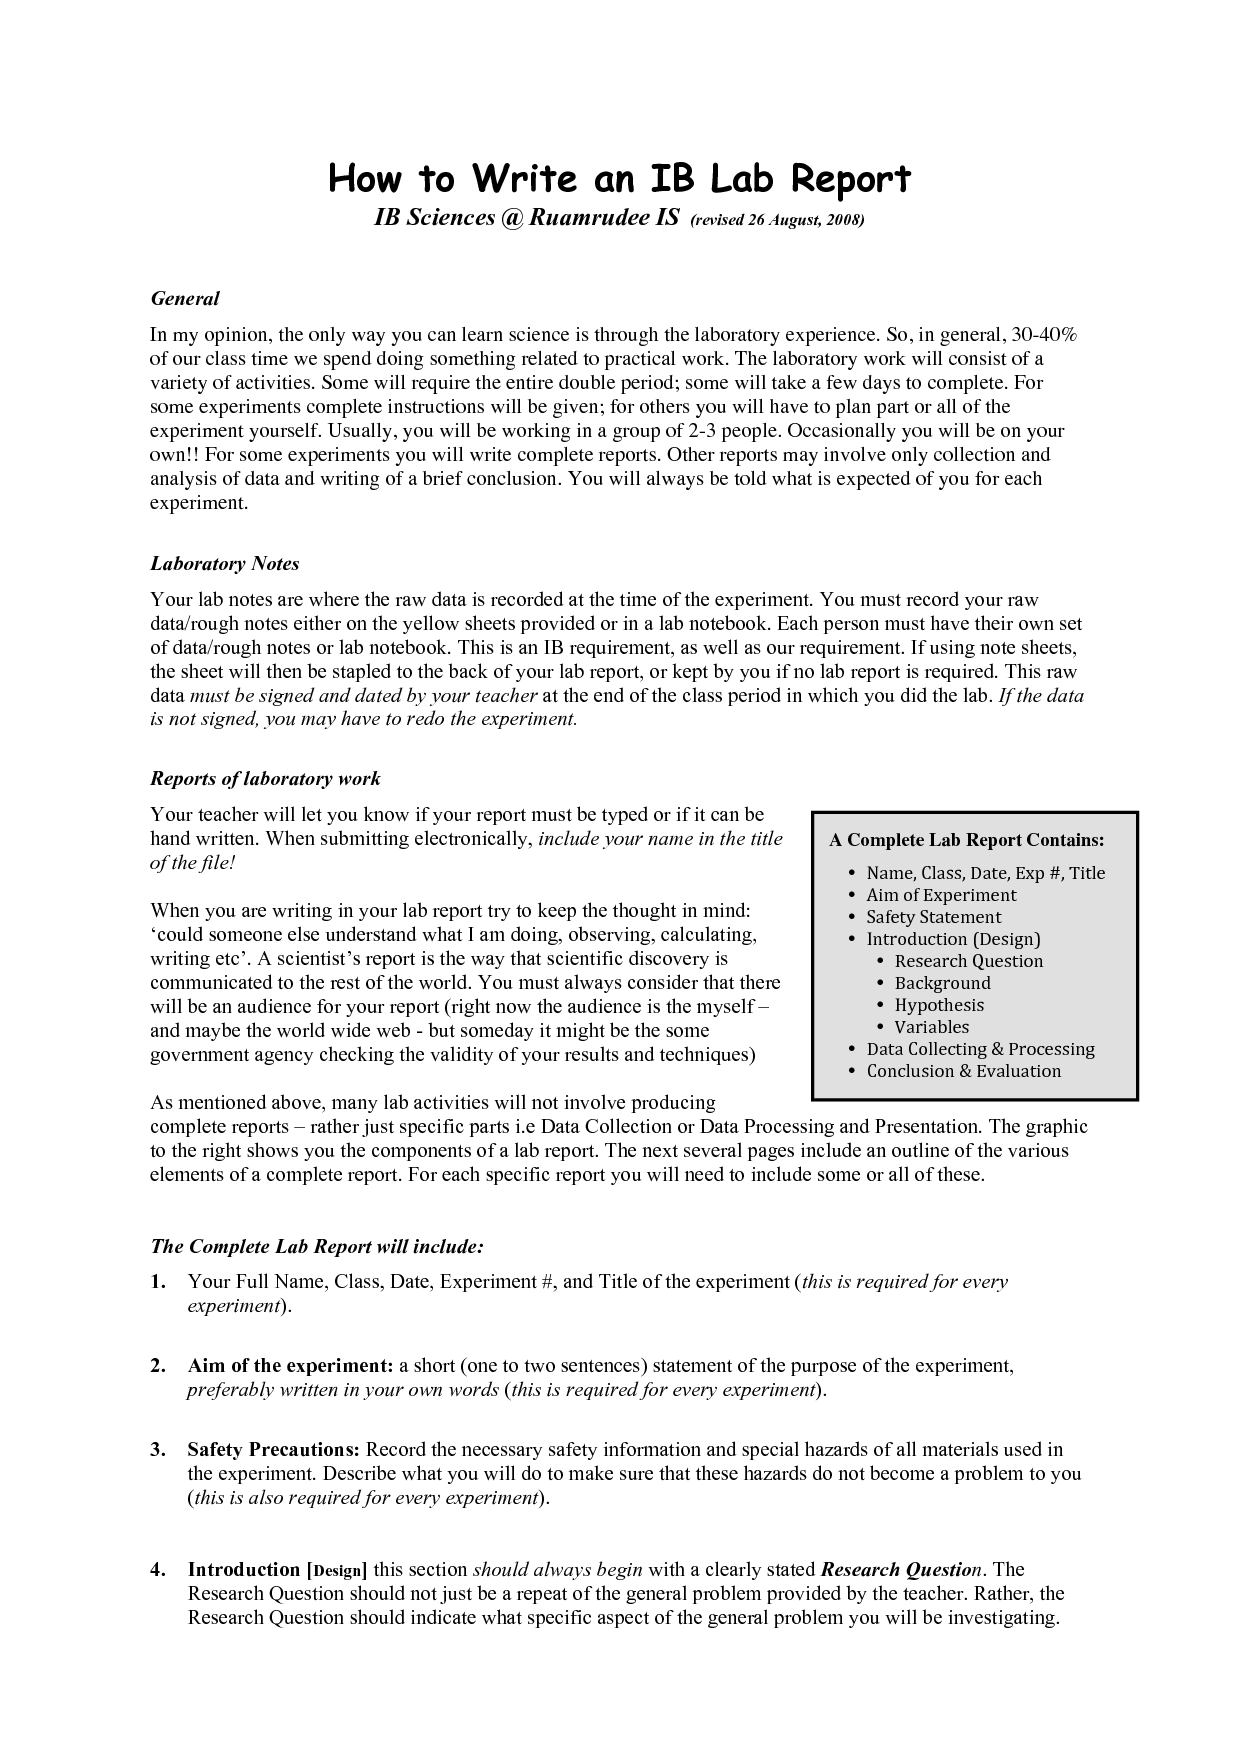 essays and research reports level b Assignment 204 task b research and account identify two reports on serious failures to protect individuals from abuse.